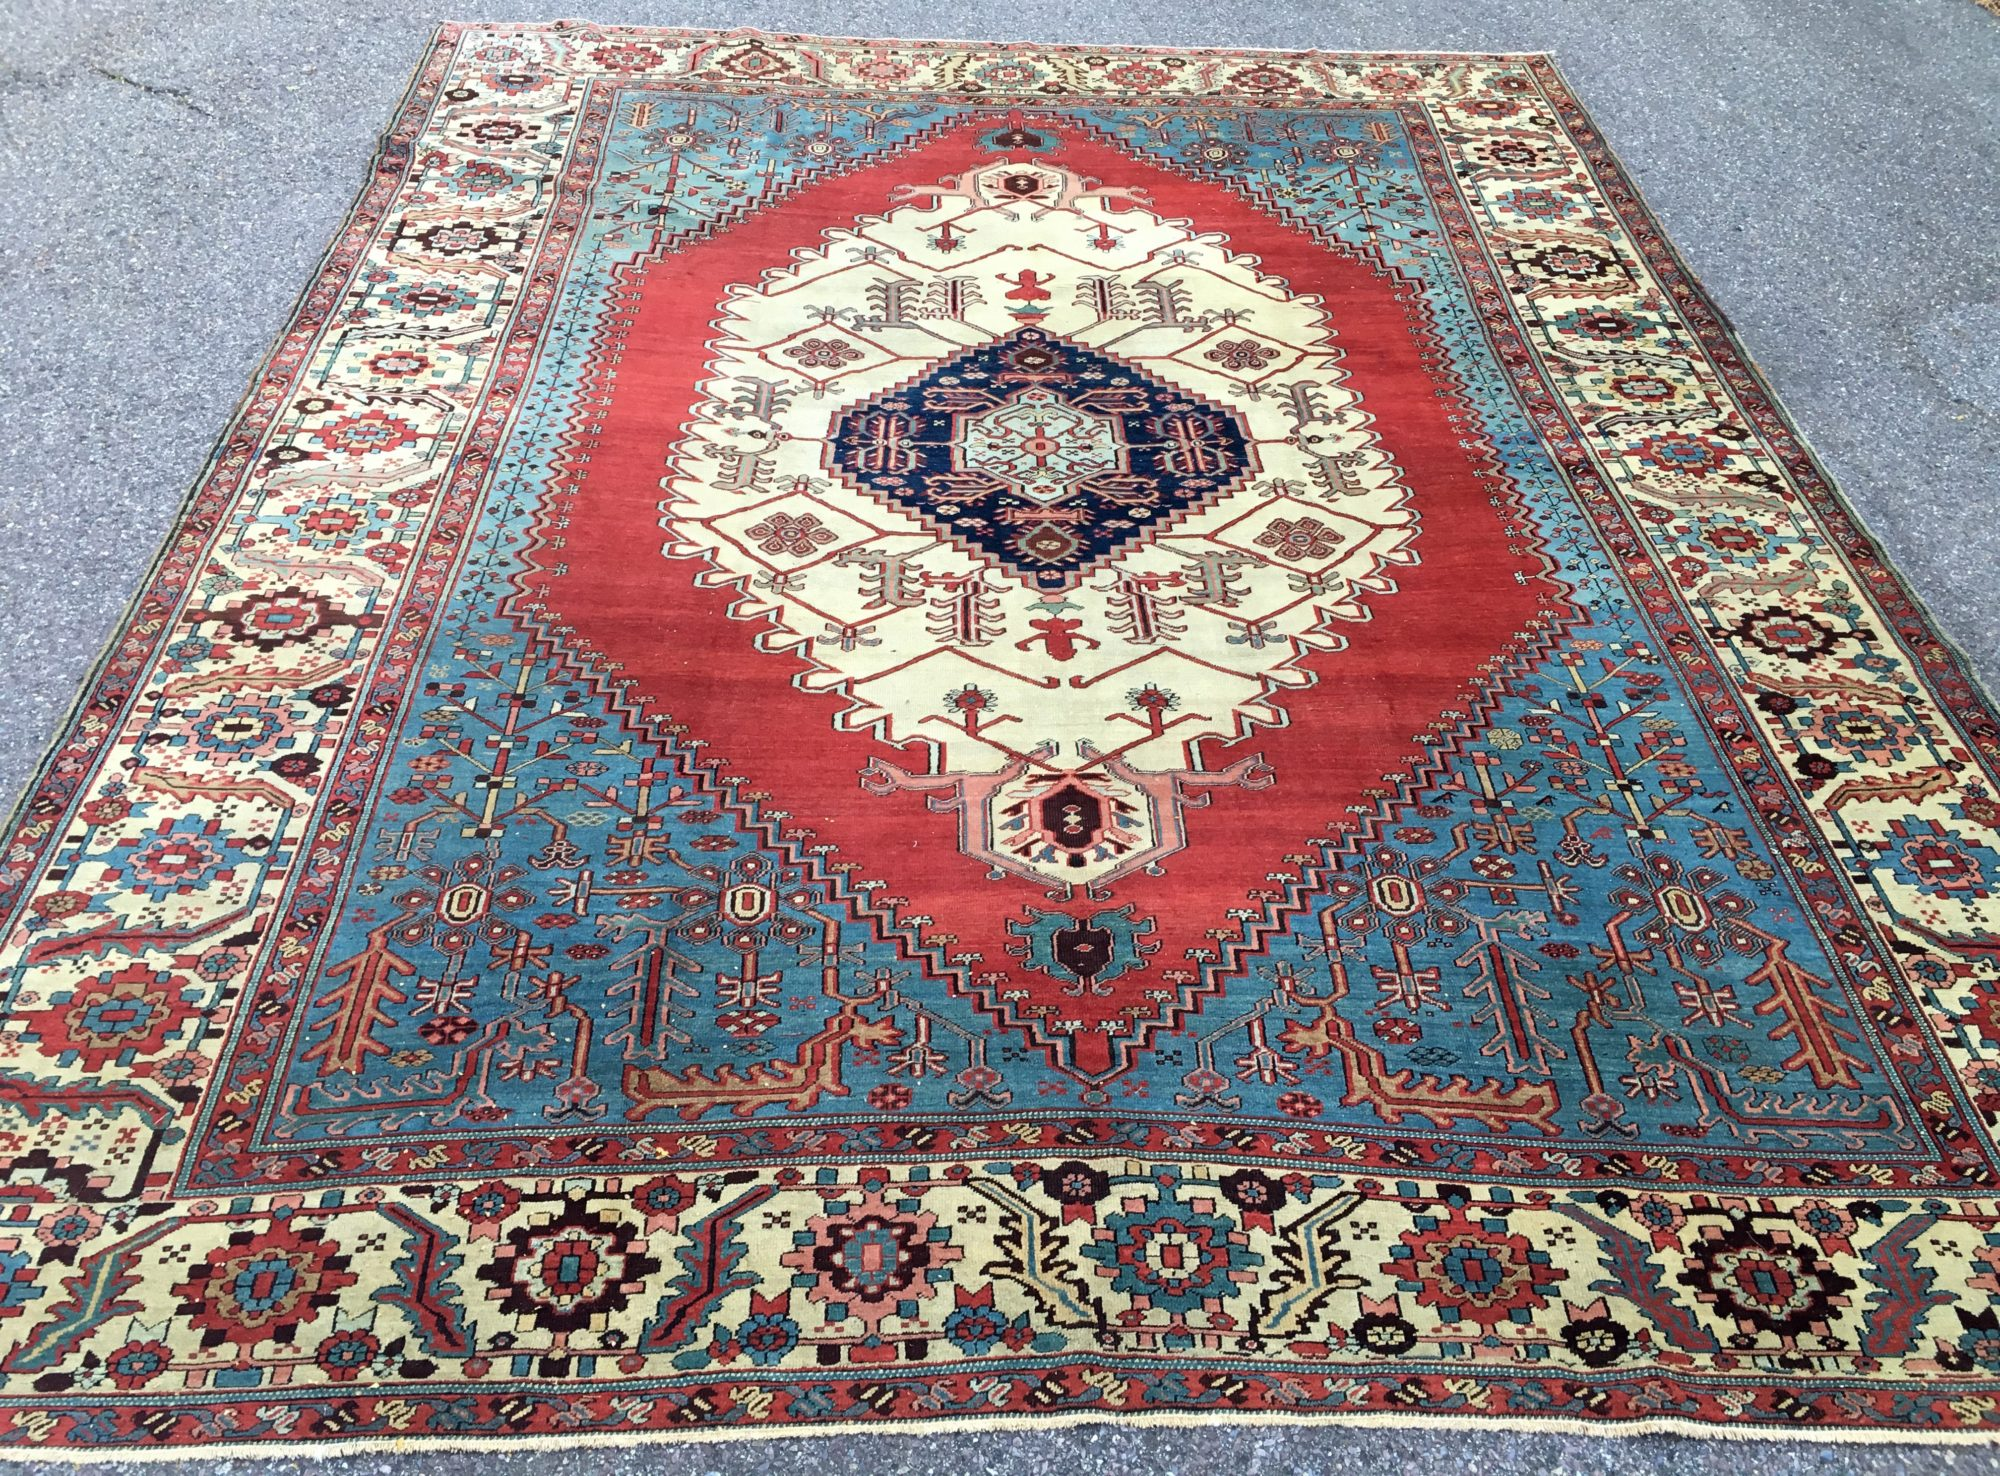 Antique Persian Carpets New Natural Dye Oriental Rugs